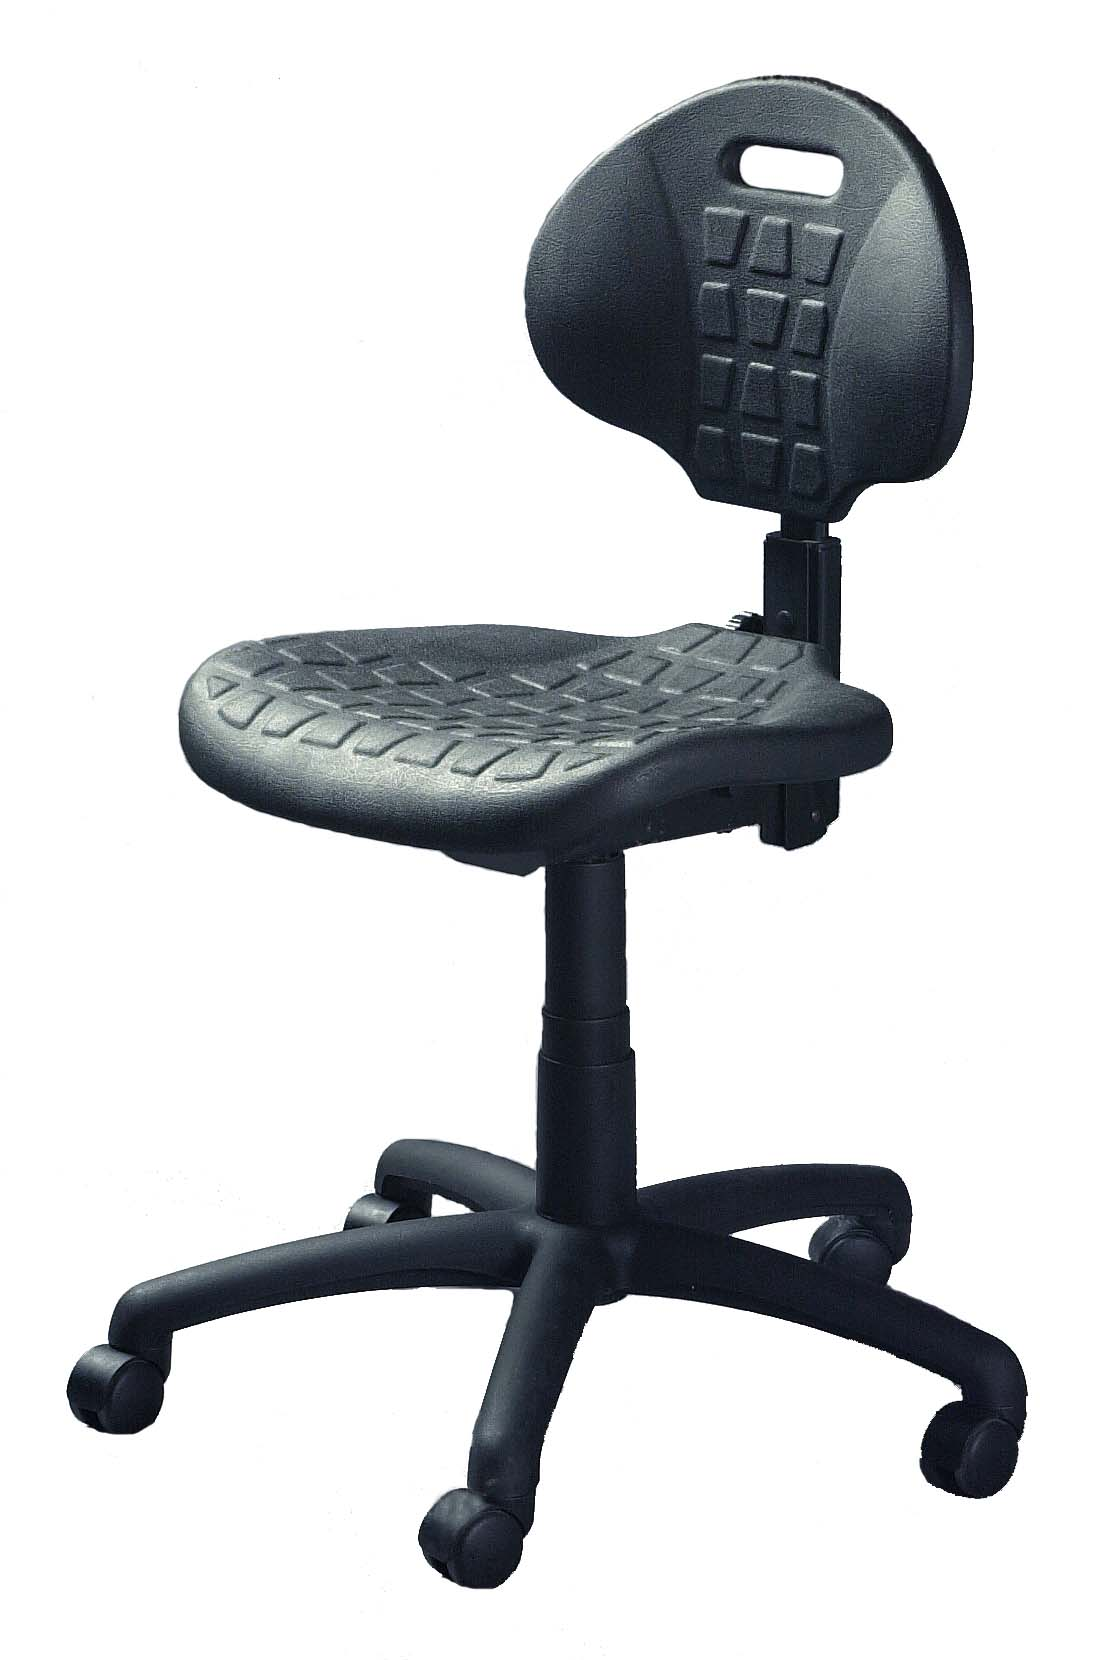 Workout labshop chair  Champion SeatingChampion Seating